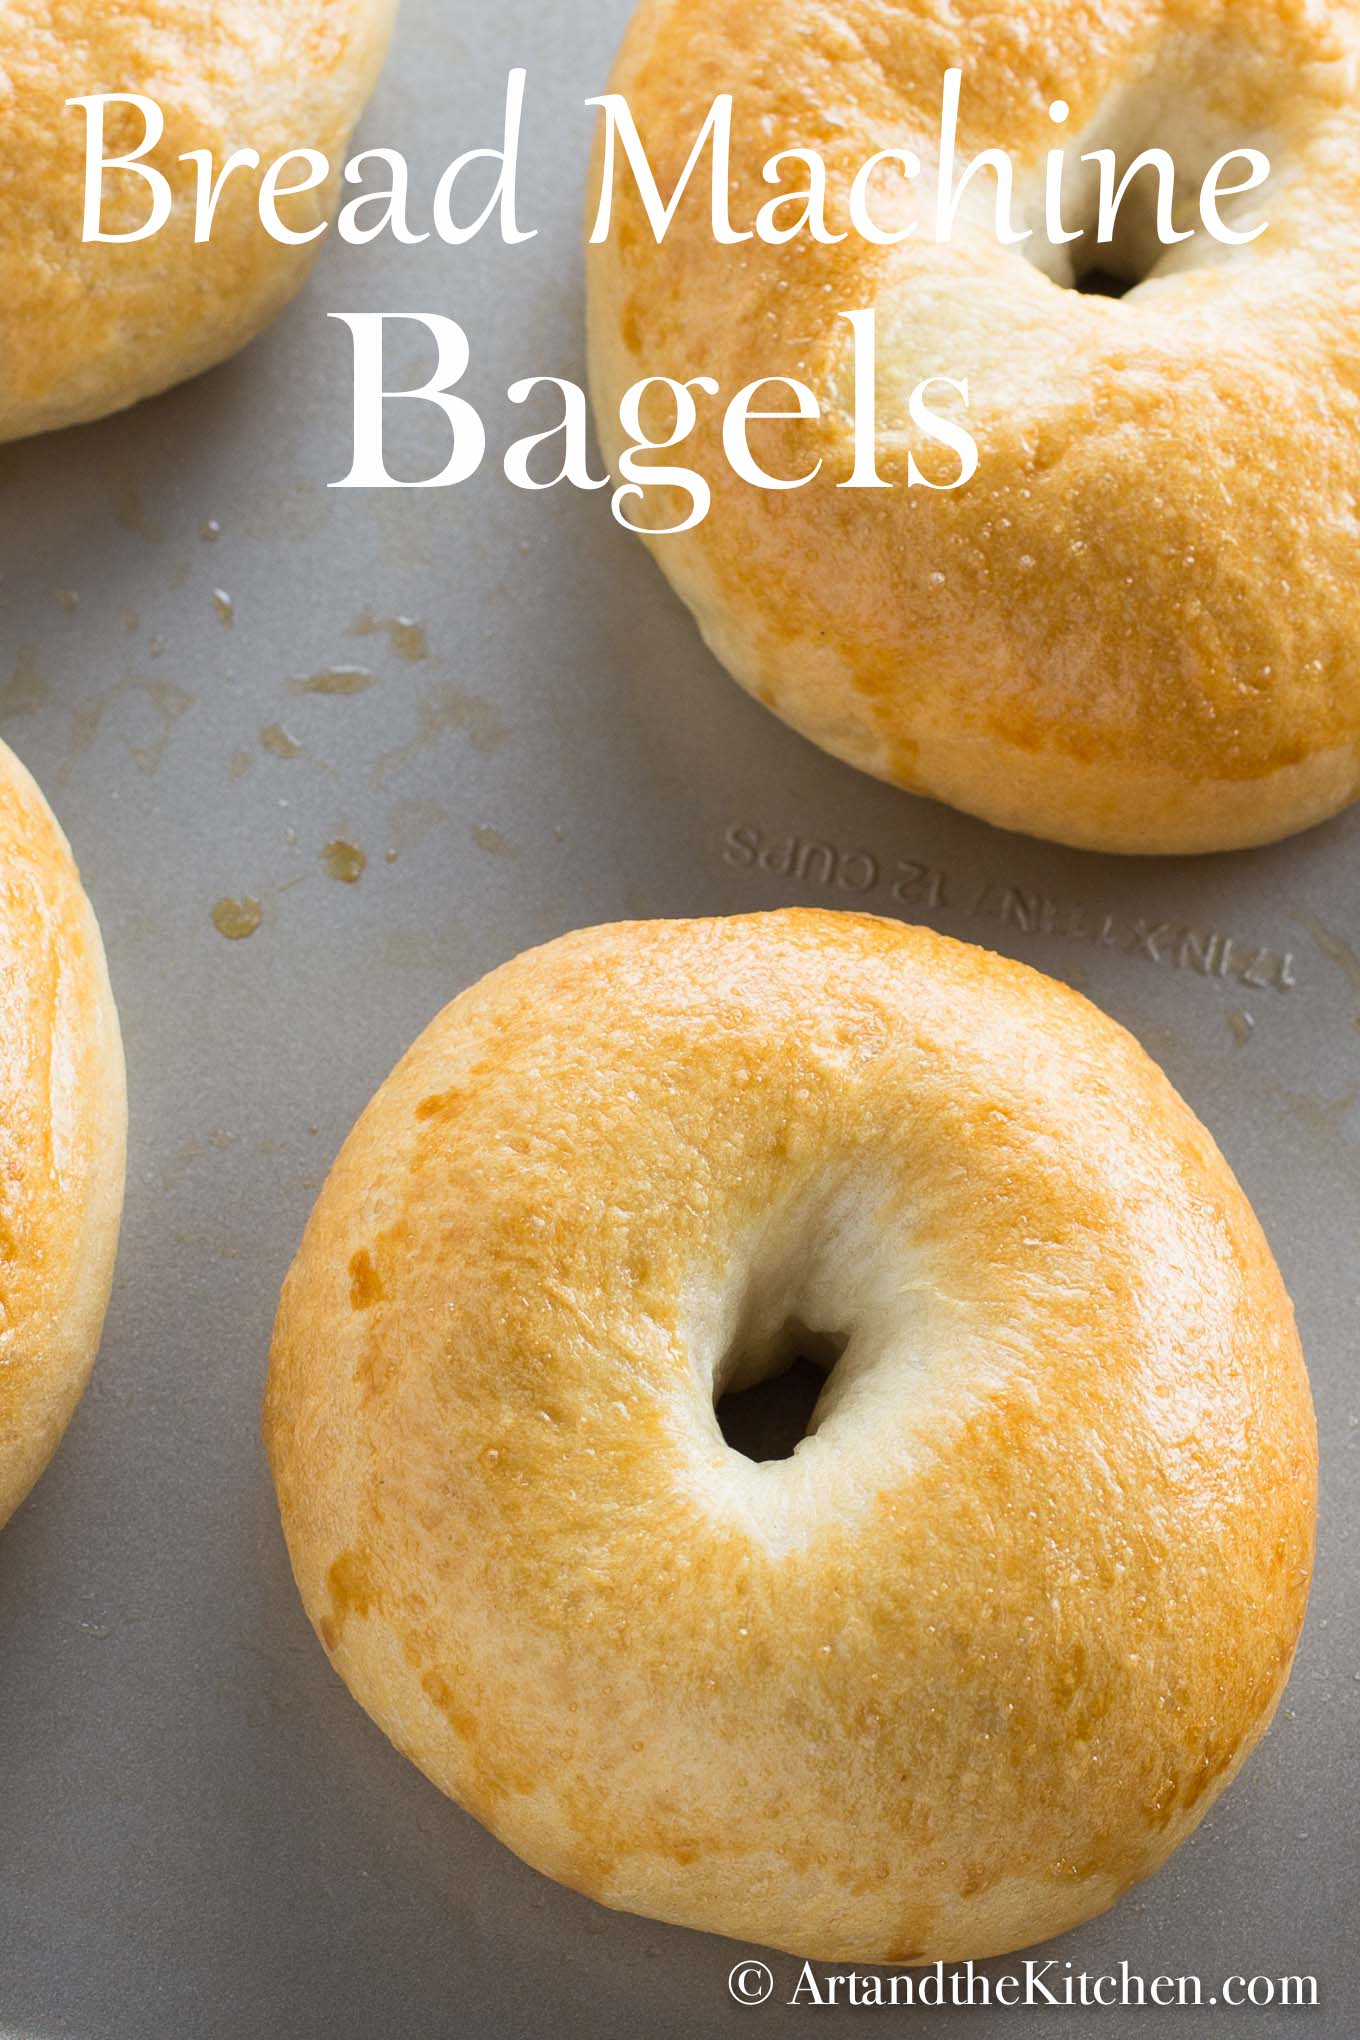 fresh baked, golden brown bagels on baking sheet. Made using a bread machine.